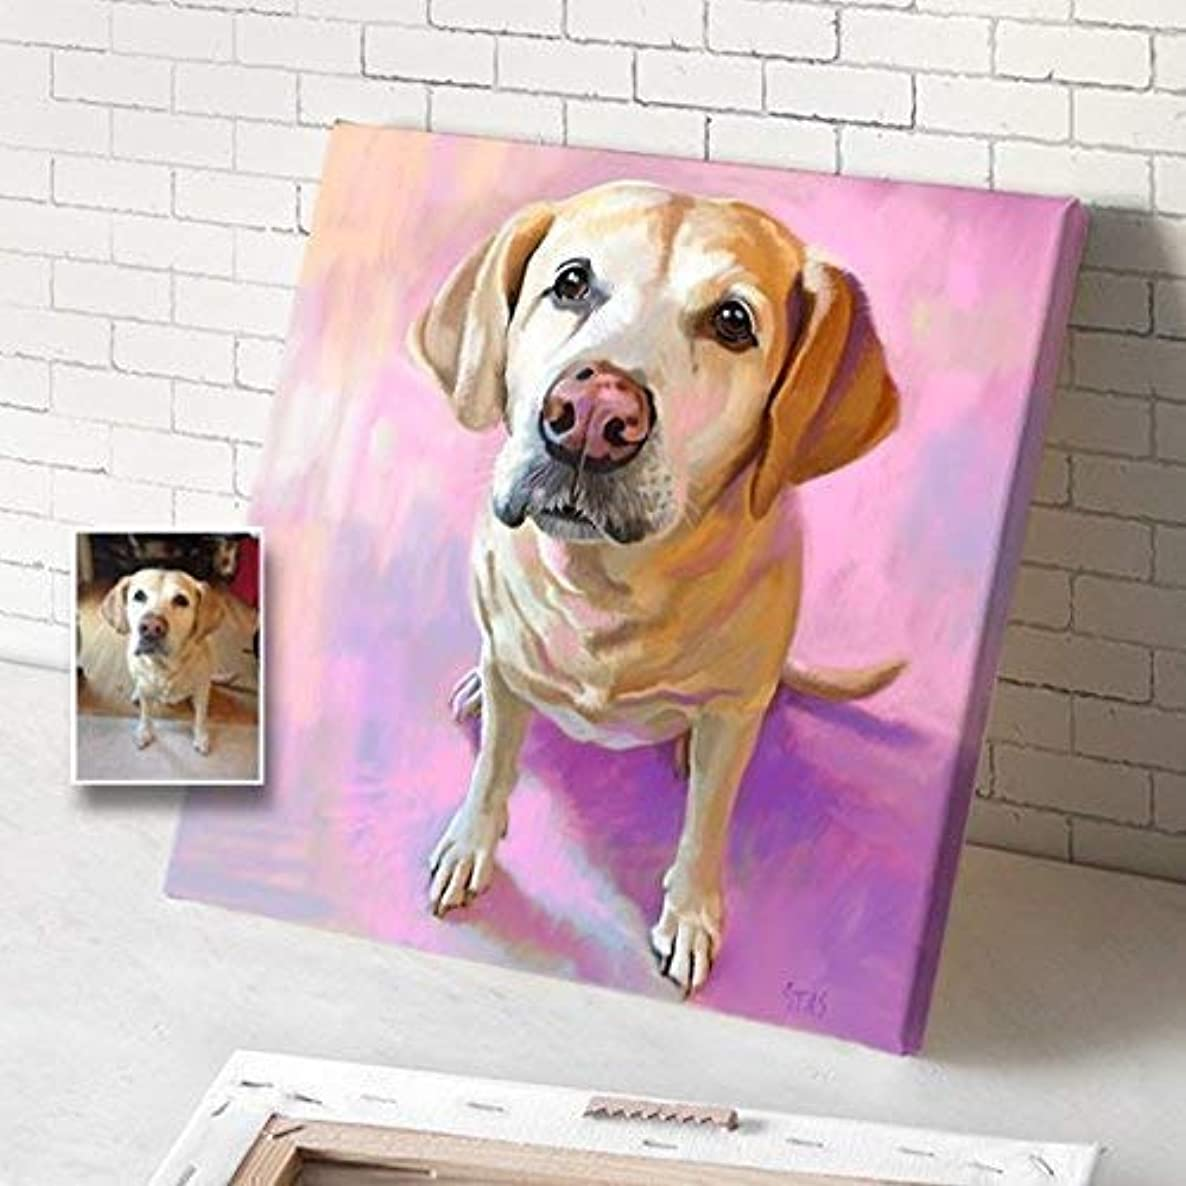 Custom Dog Portrait On Canvas, Portrait From Photo, Personalized Customized Acrylic Oil Watercolor Painting, Dog Canvas